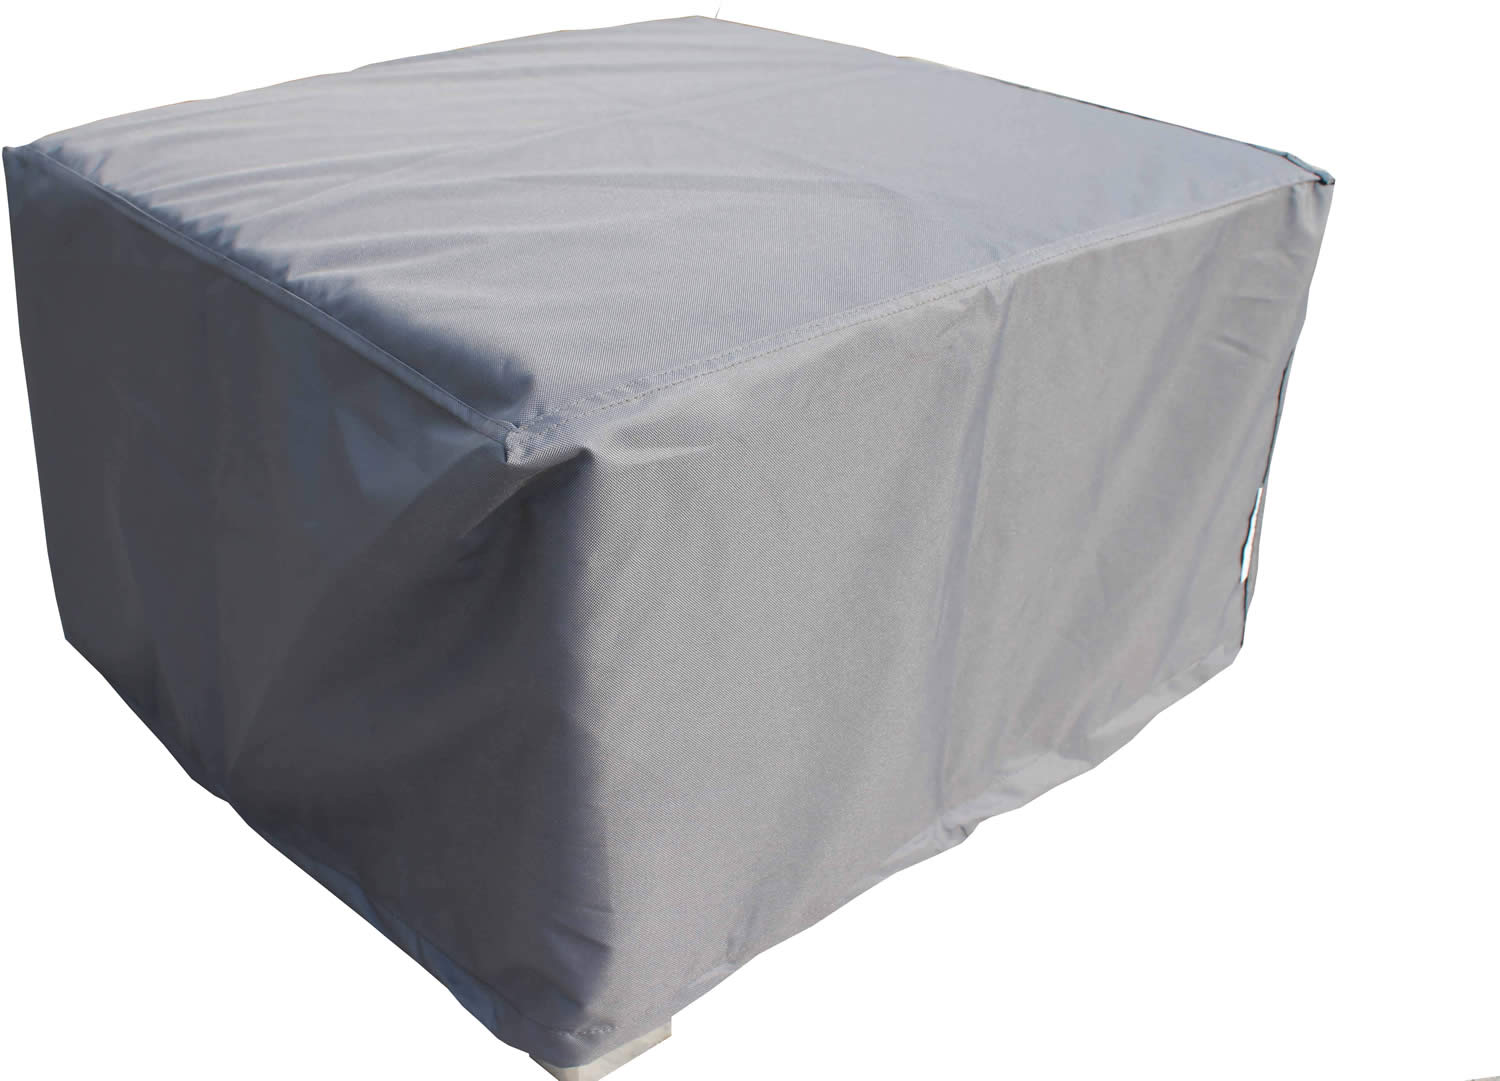 Waterproof Garden Furniture Covers Argos Garden Design Ideas Portofino Patio